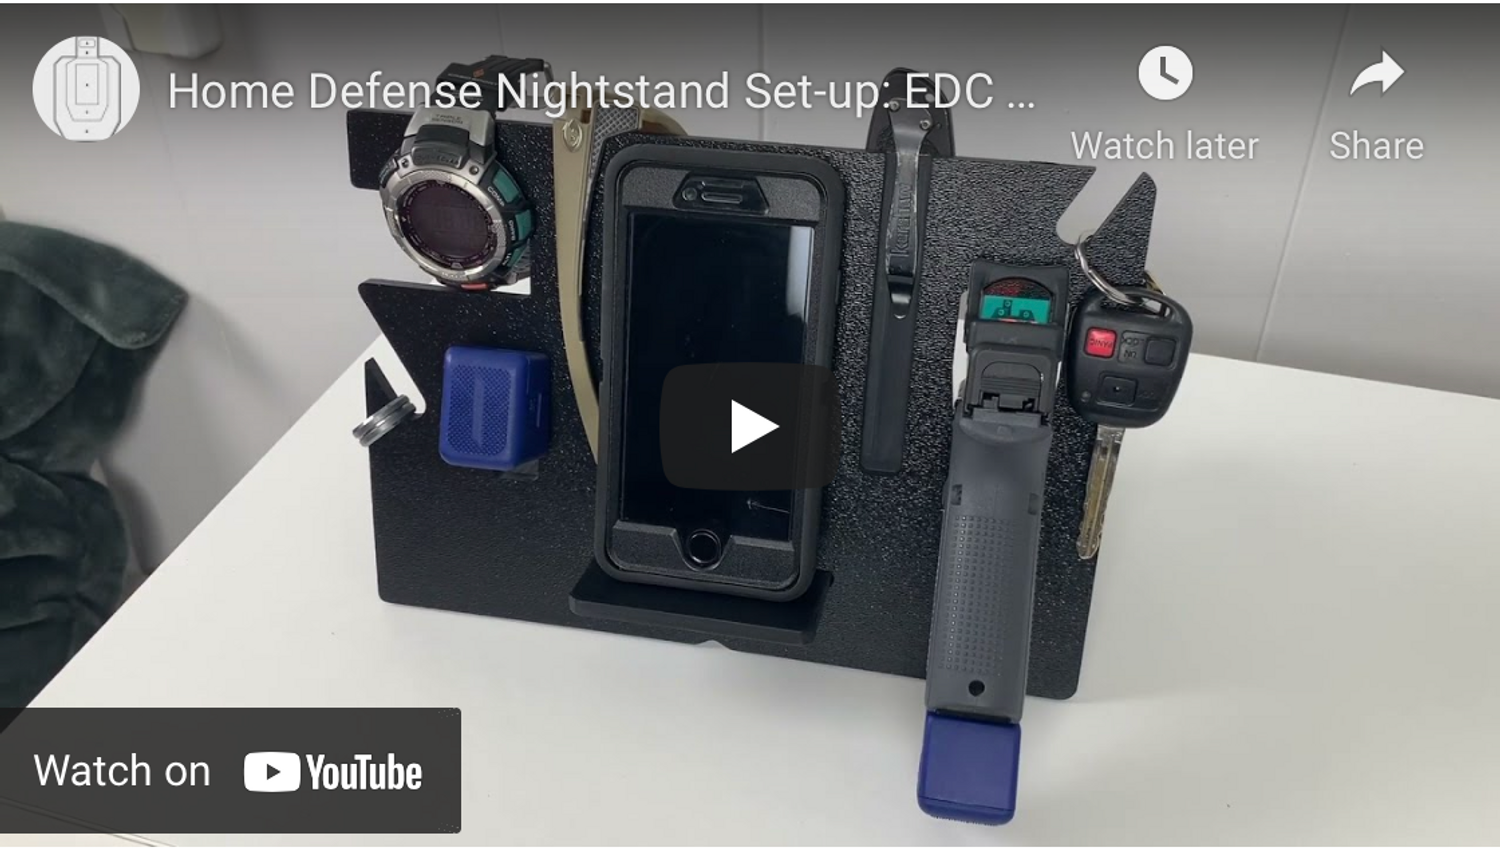 Home Defense Nightstand Set-up: EDC Stand vs. Dump Tray